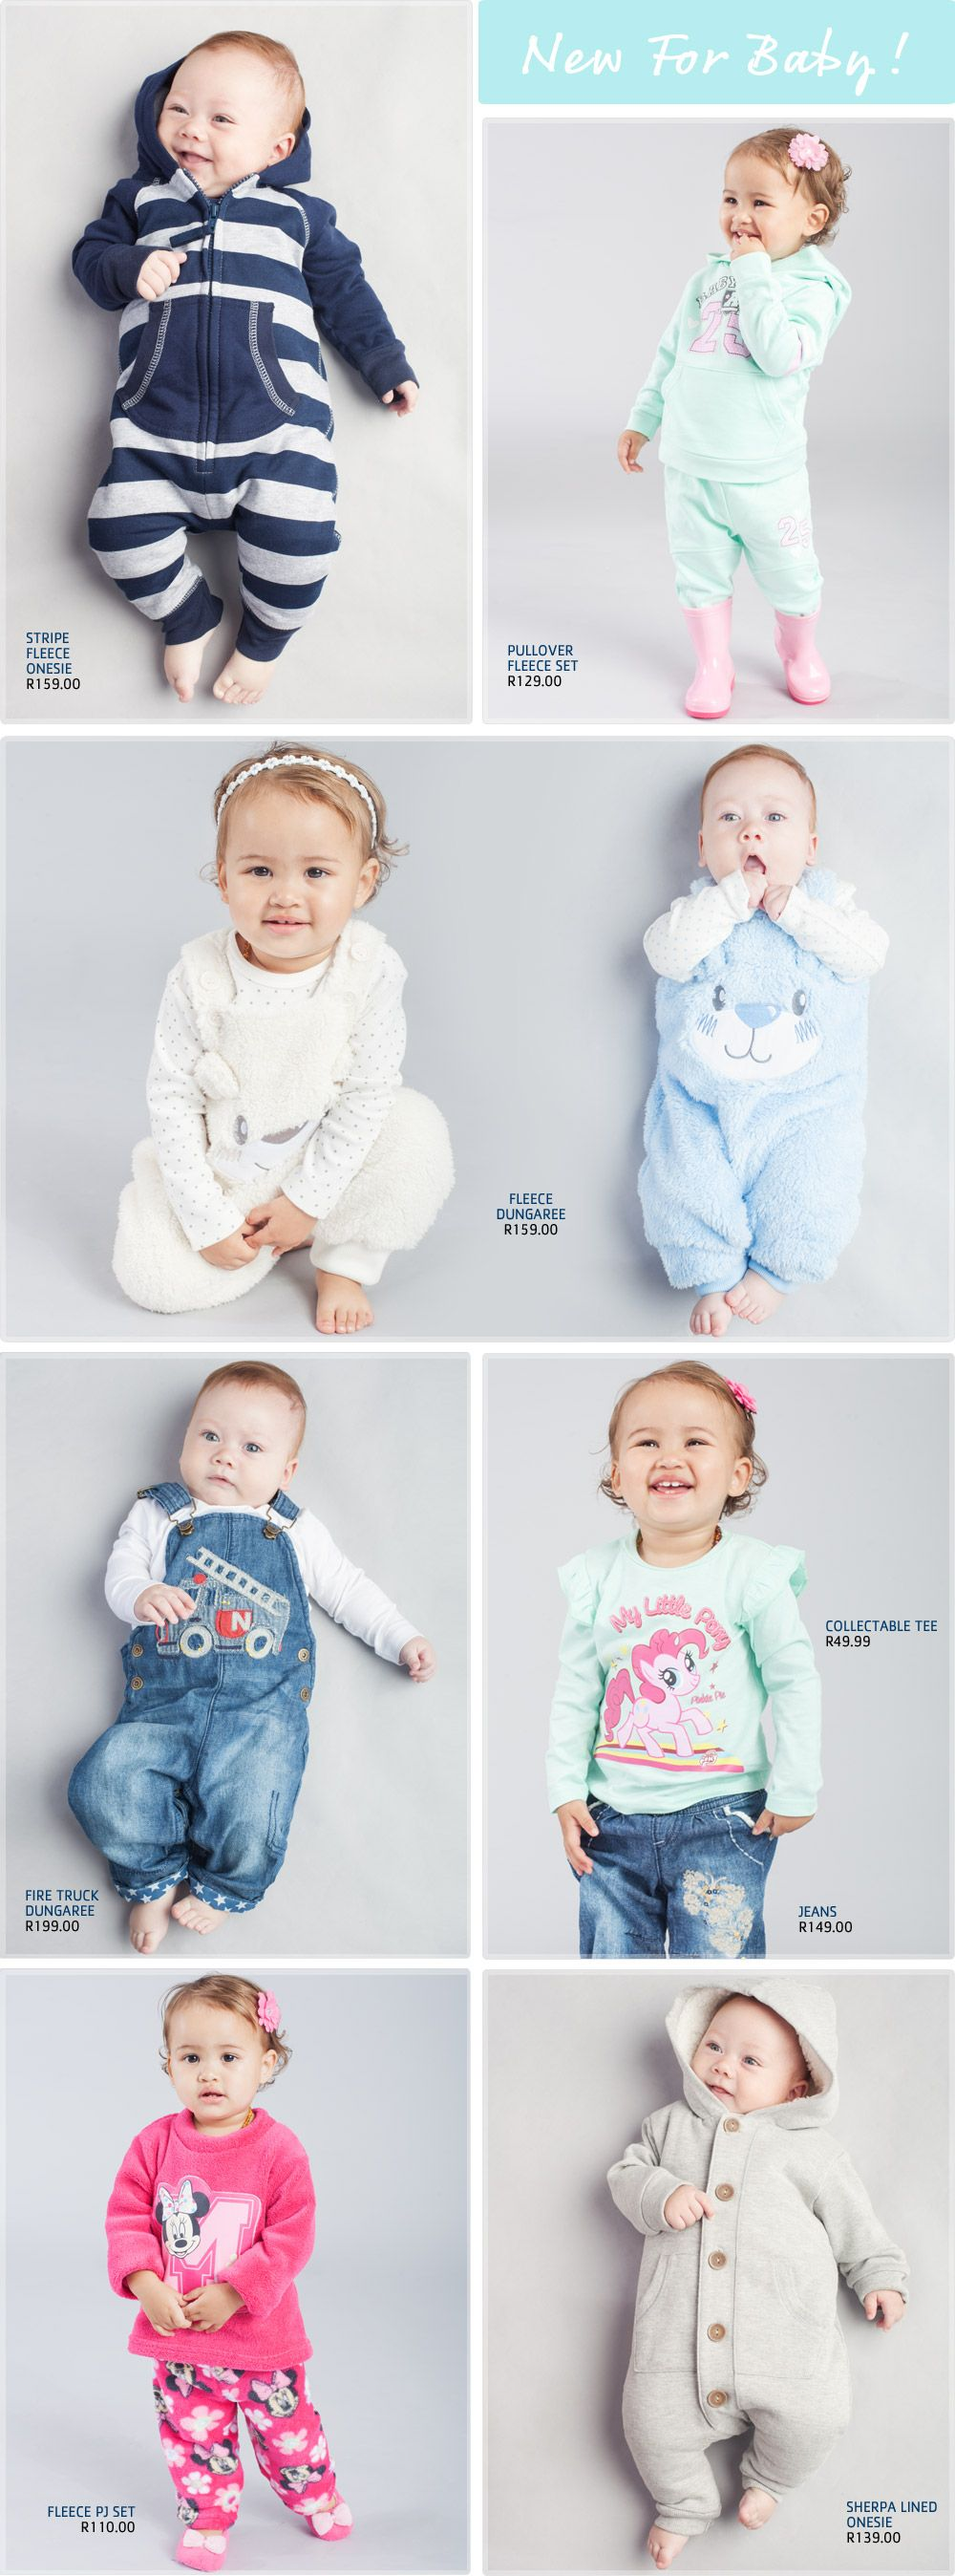 clothing baby - pick n pay a wide selection and collection of